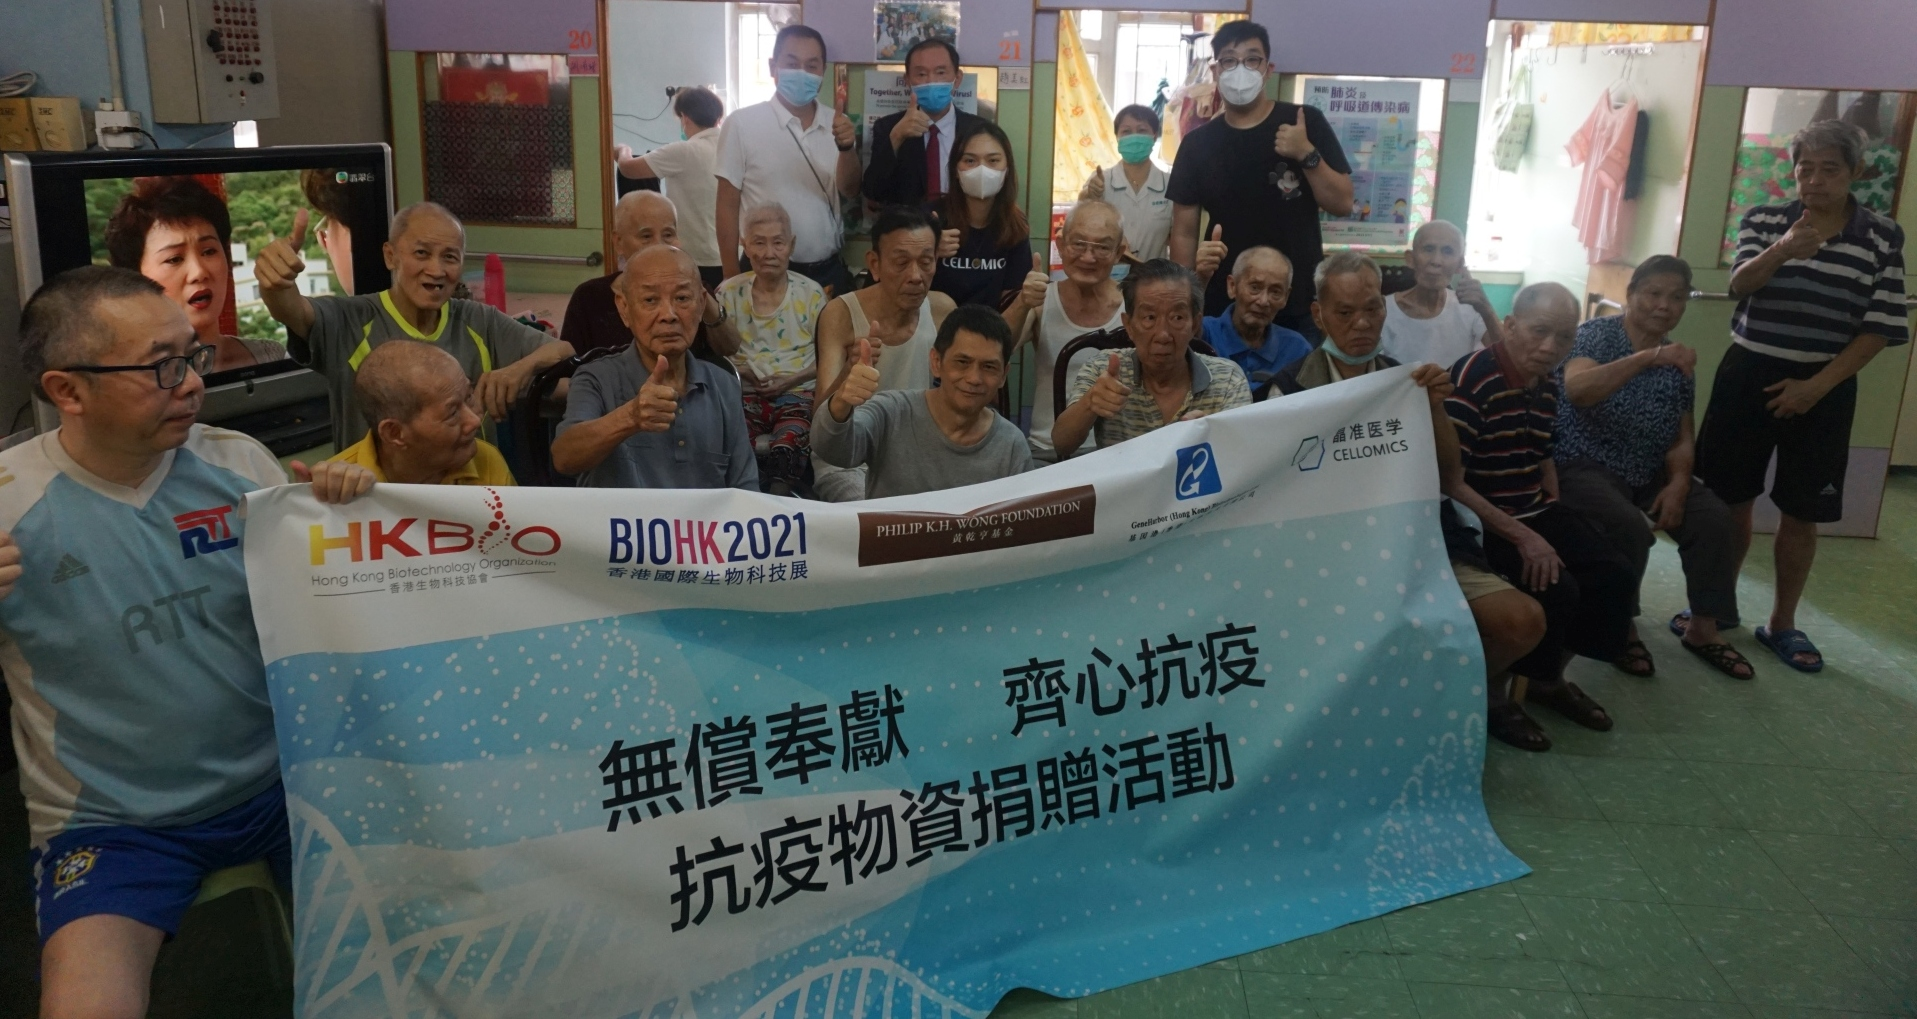 Hong Kong Biotechnology Organization supporting vulnerable groups in their fight against the virus